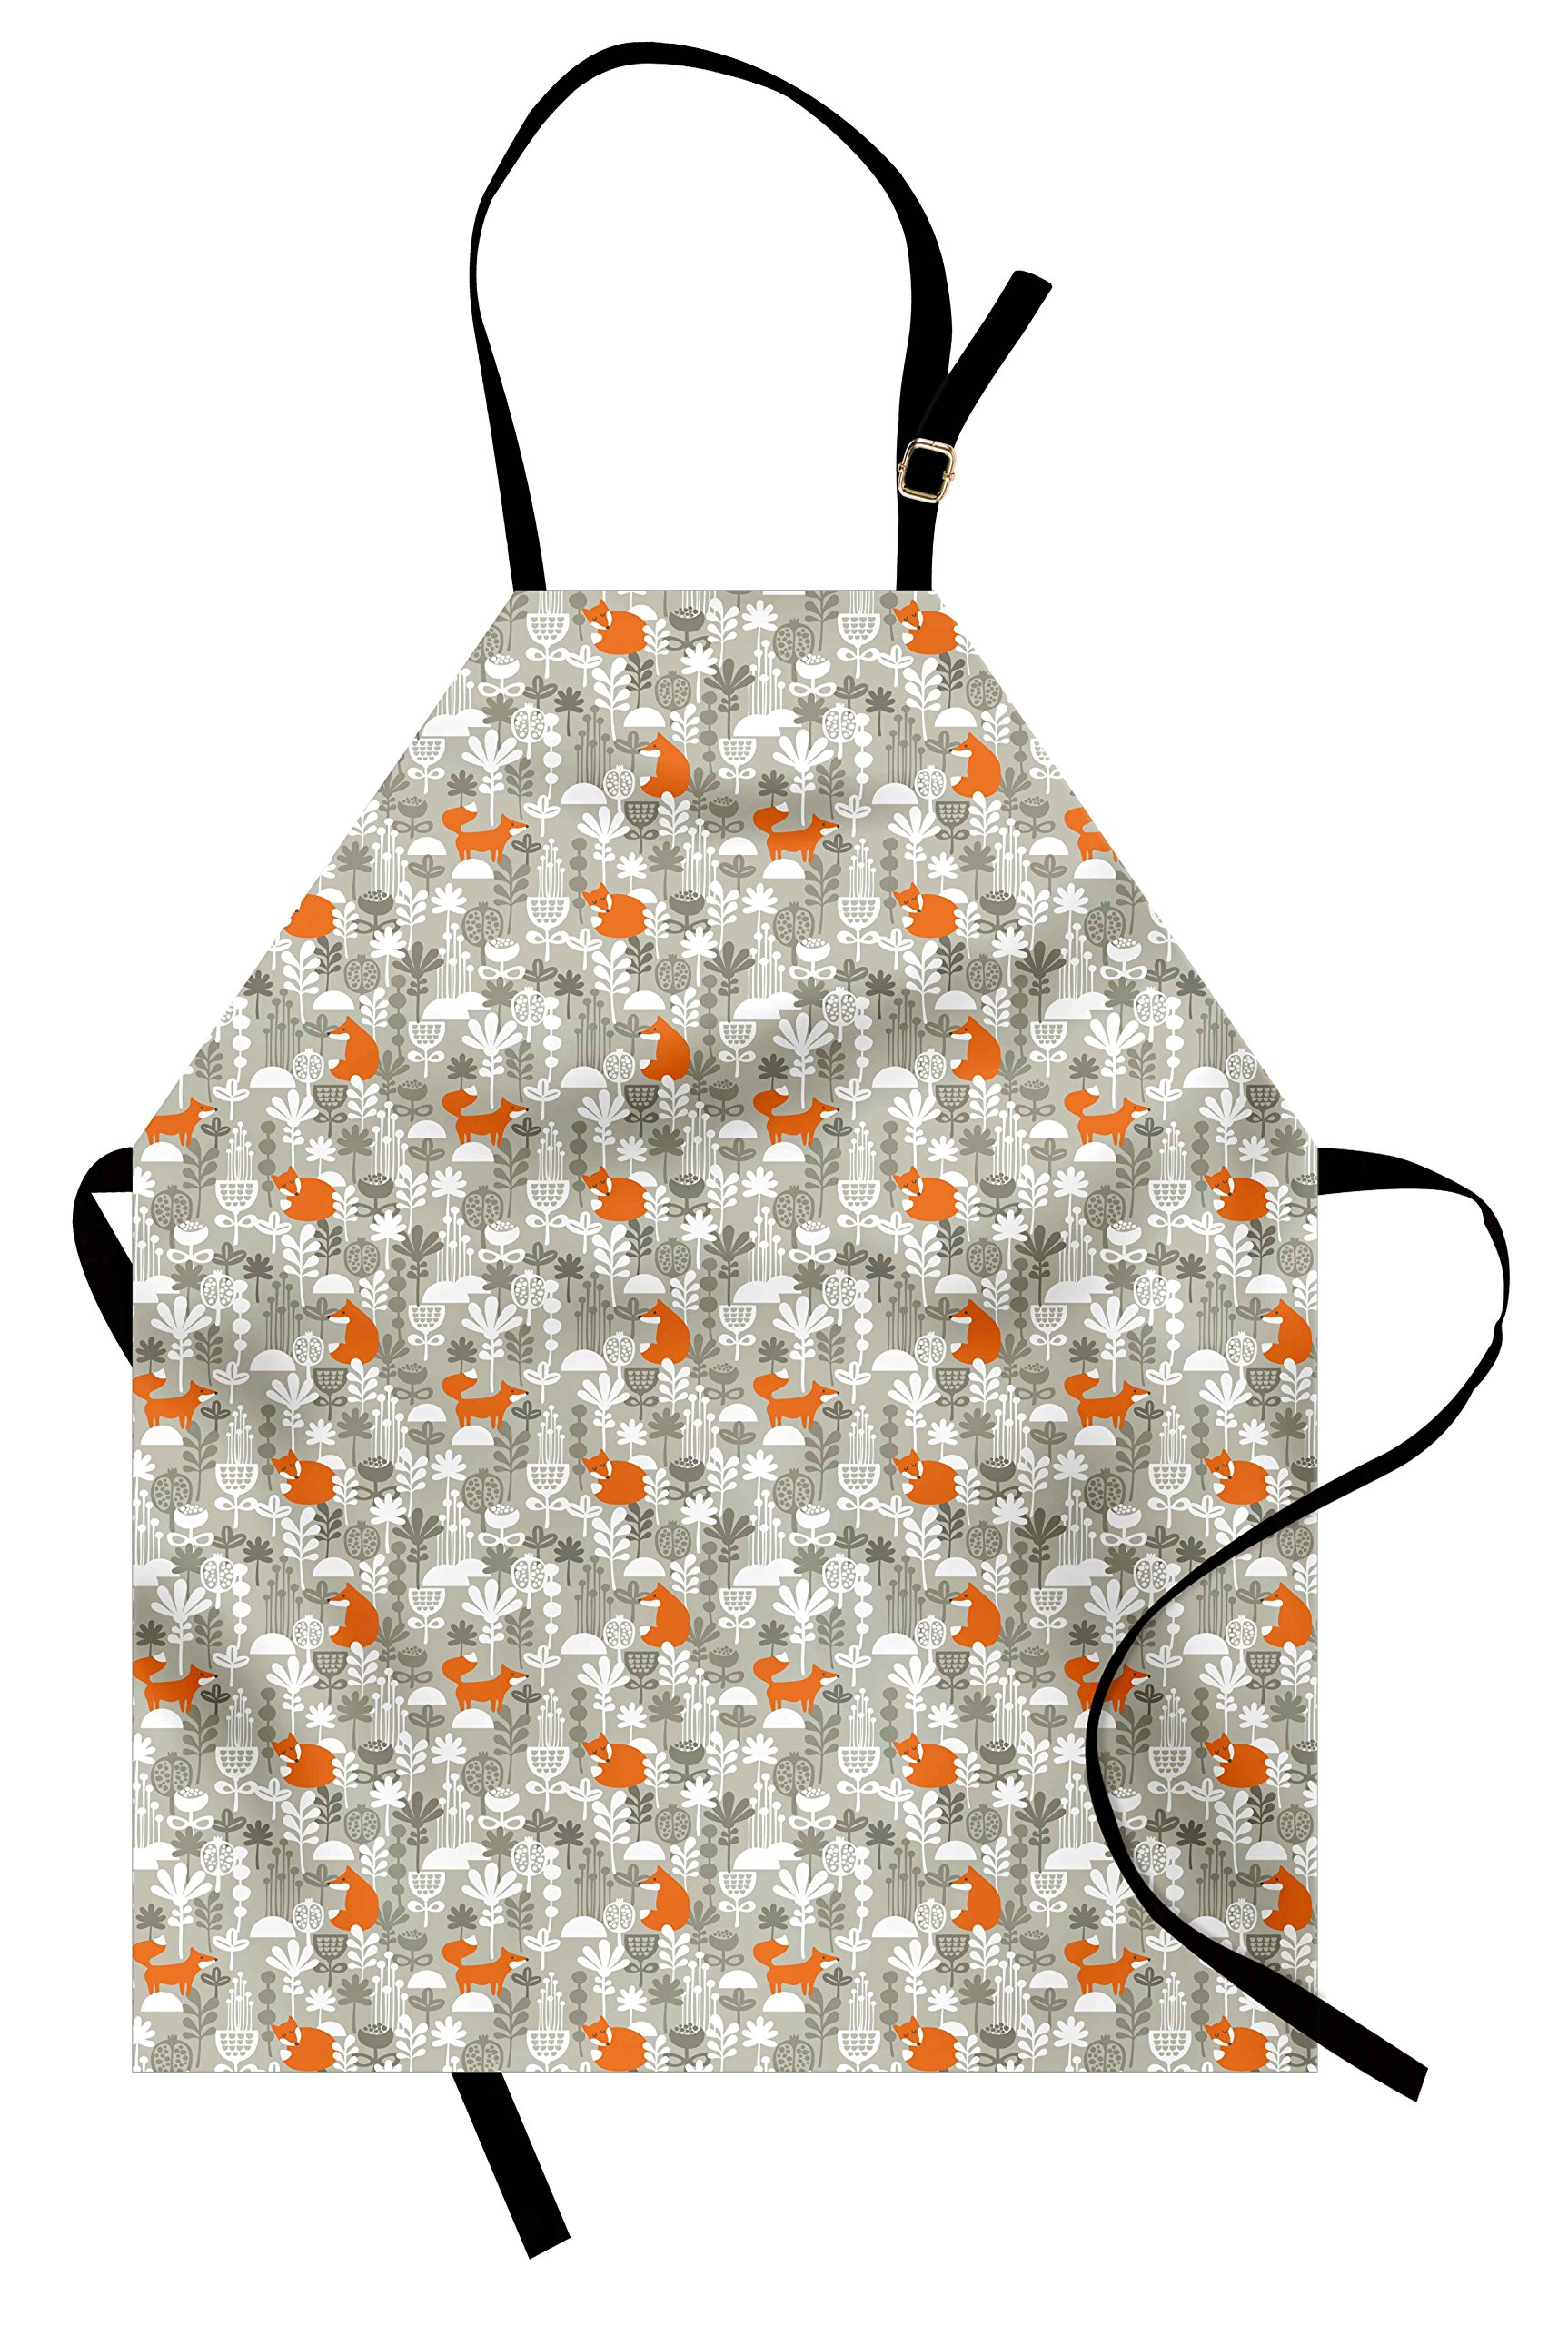 Lunarable Autumn Fall Apron, Cute Fox Animal Sleeping in the Forest Plants Woodland Wildlife Theme, Unisex Kitchen Bib Apron with Adjustable Neck for Cooking Baking Gardening, Orange Grey White by Lunarable